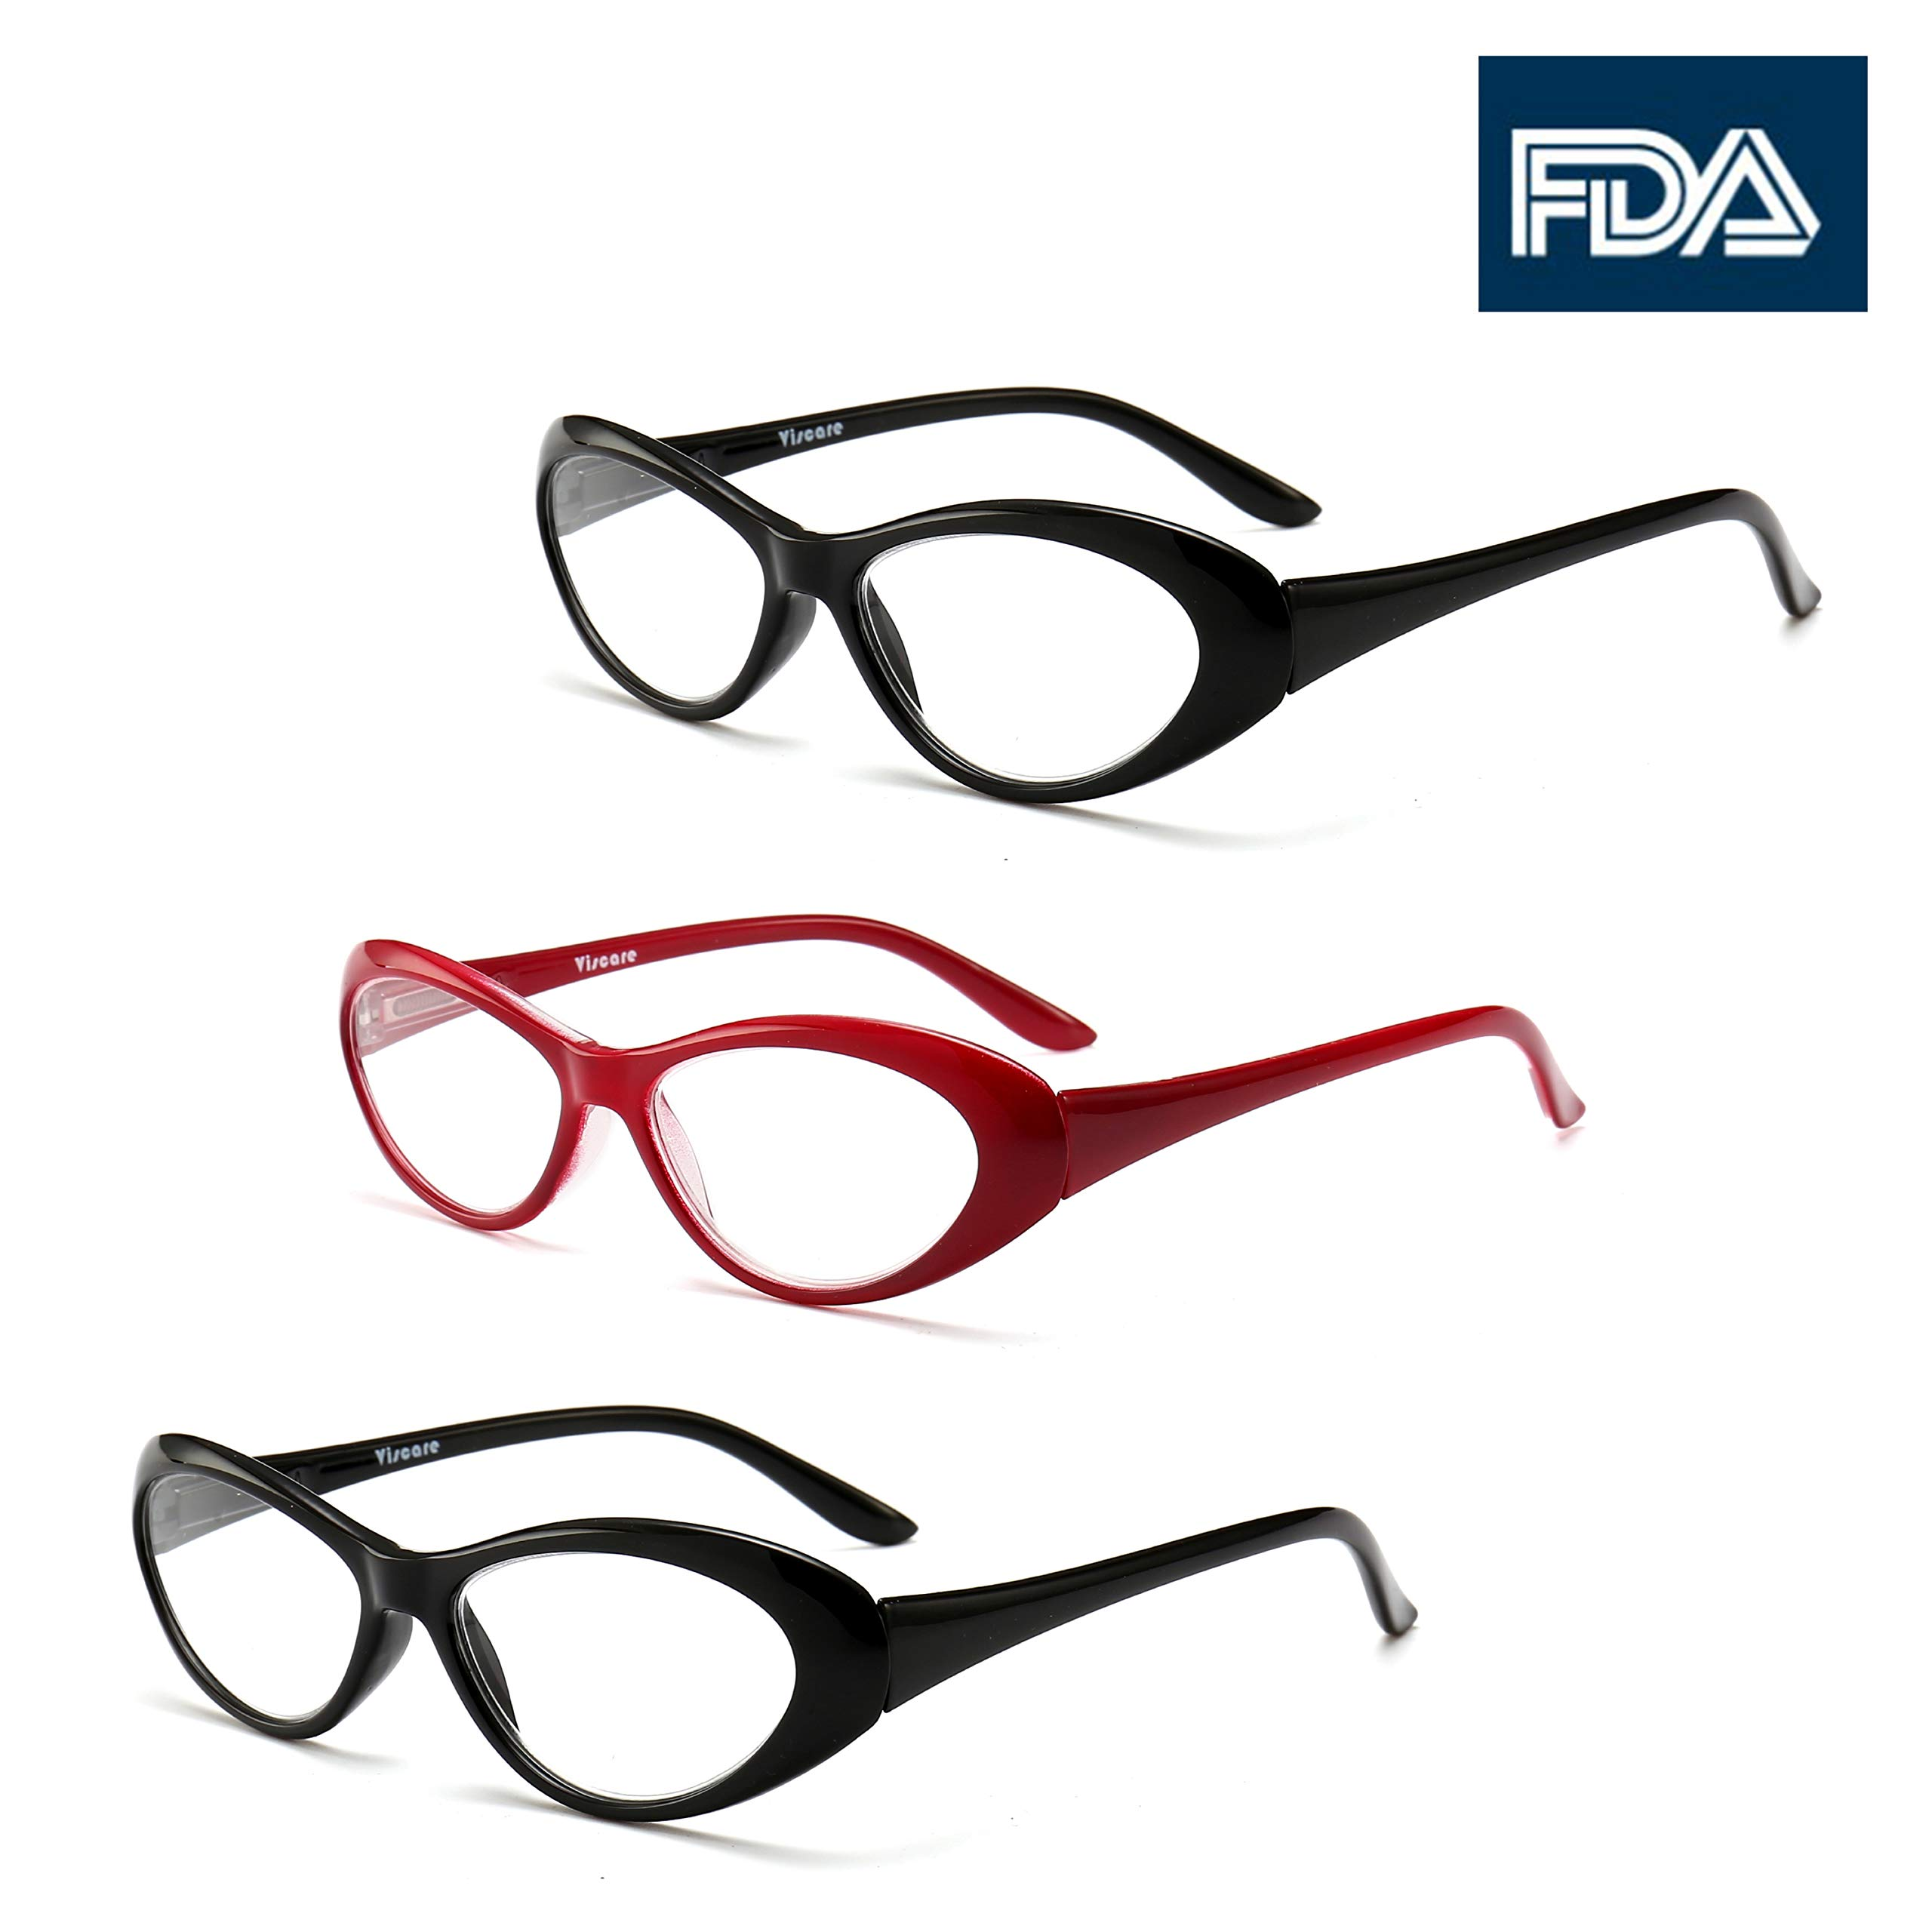 Viscare Cateye Butterfly Reto Vintage Fashion 3-Pack Reading Readers Glasses (Red+Black, 2.50)